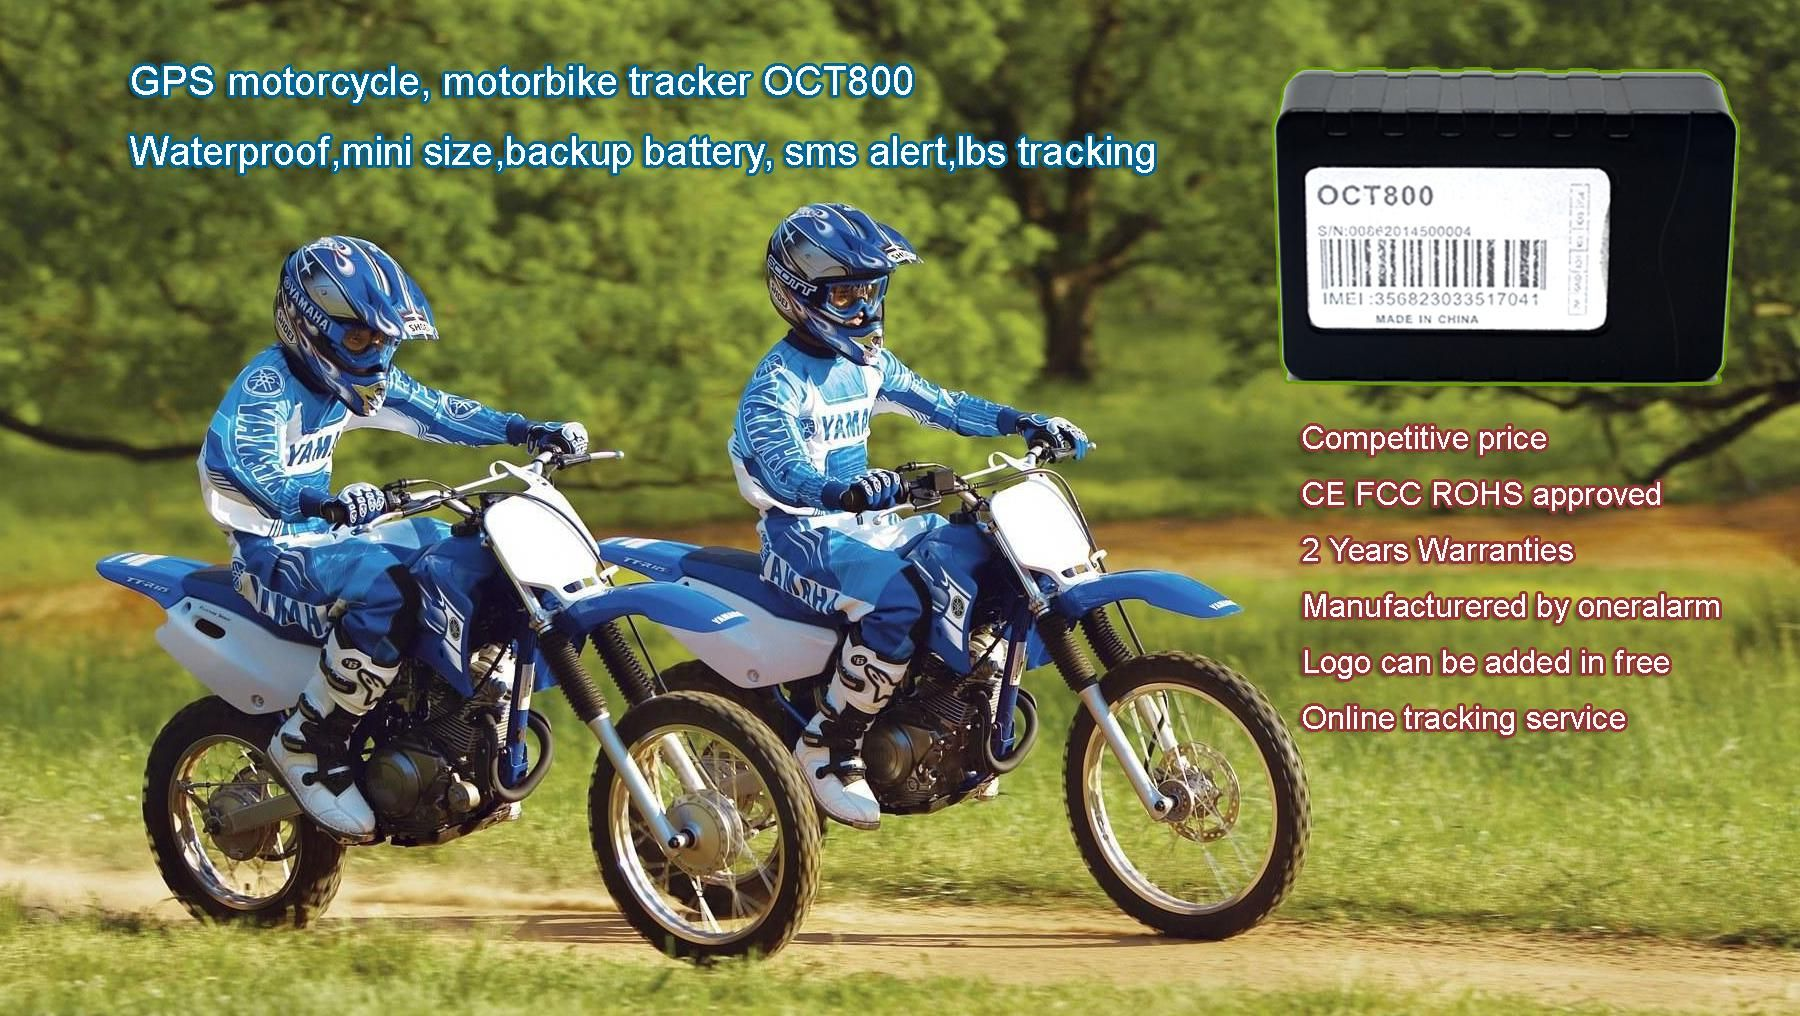 Oct800 The Mini Size Gps Tracker Which With Inbuilt Gps And Gsm Antenna It Is Easy To Hide And Install With The Design Pa Motorbike Tracker Gps Gps Tracker